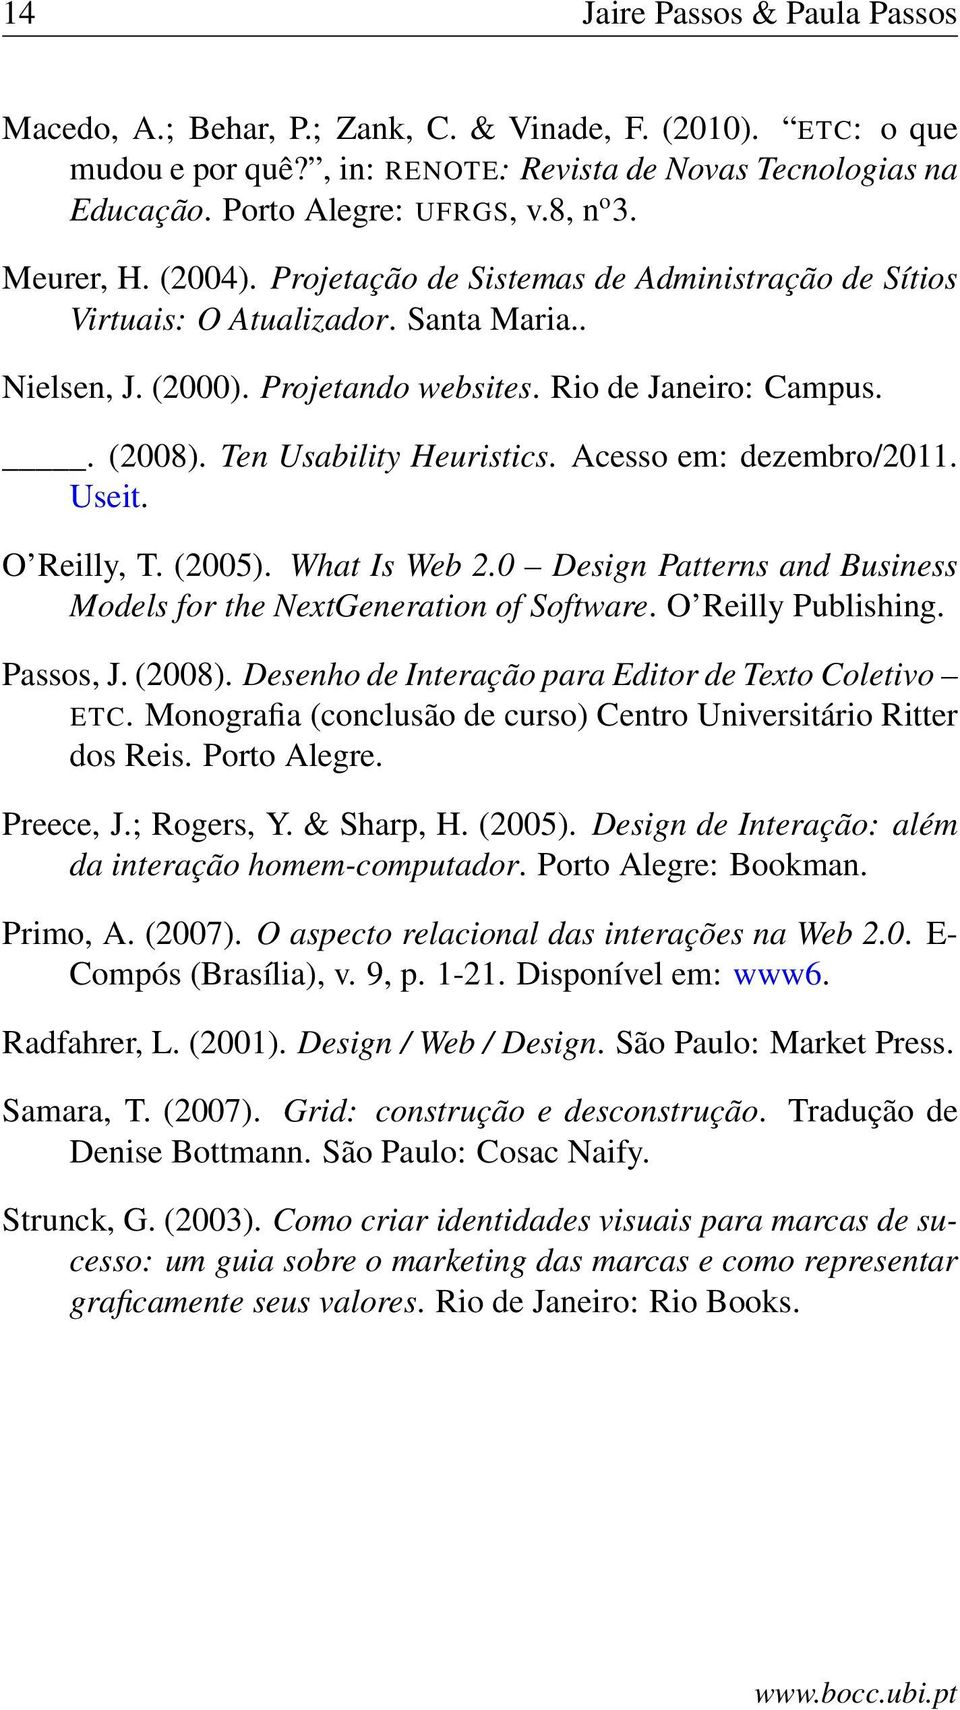 Ten Usability Heuristics. Acesso em: dezembro/2011. Useit. O Reilly, T. (2005). What Is Web 2.0 Design Patterns and Business Models for the NextGeneration of Software. O Reilly Publishing. Passos, J.